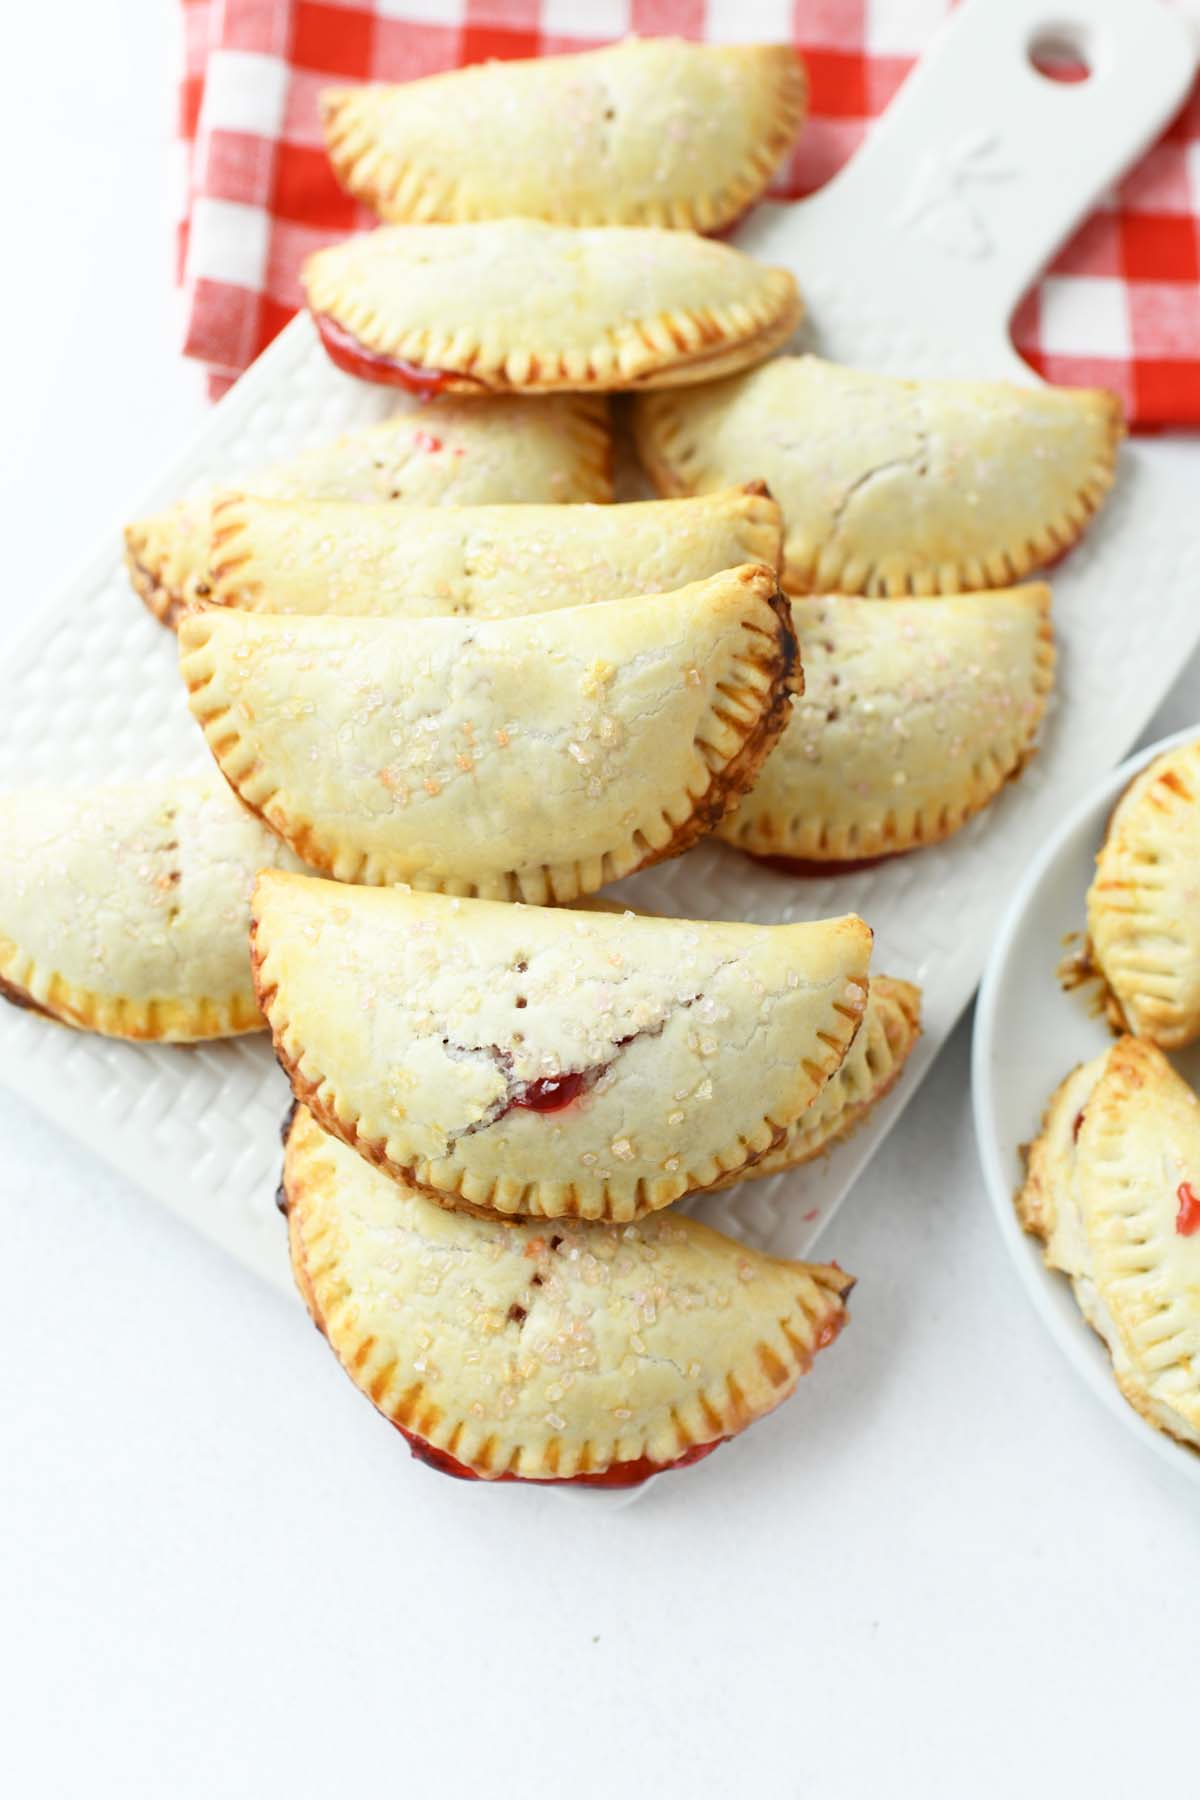 Cherry Hand Pies stacked together on a table.